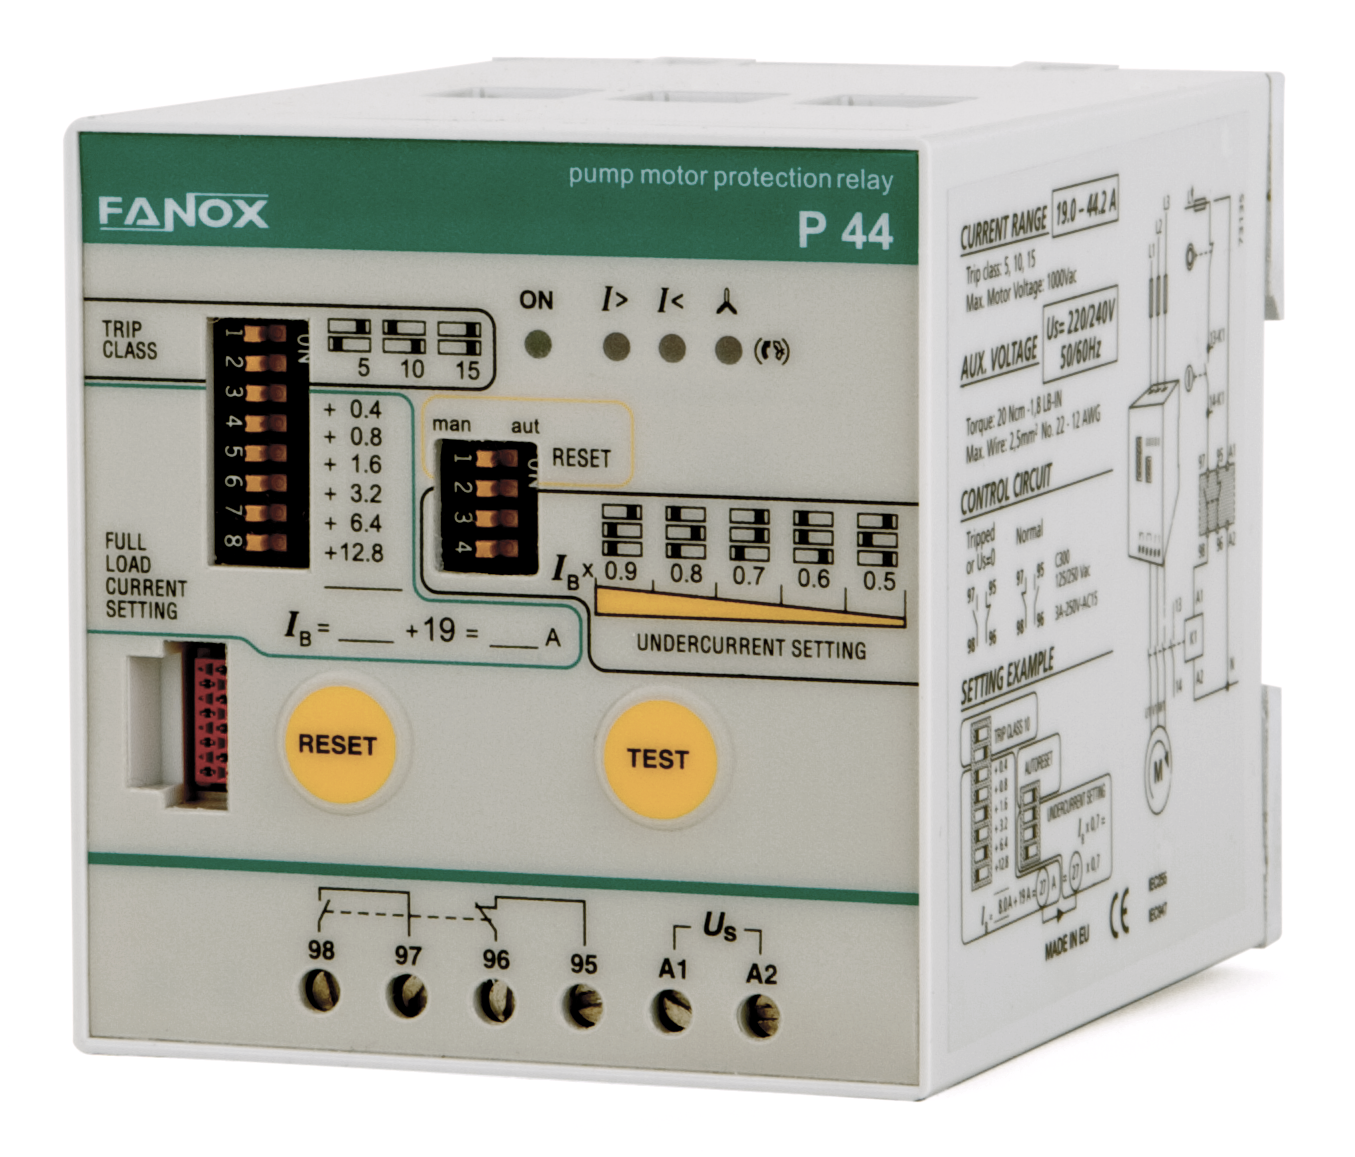 Tree phase pump protection relay